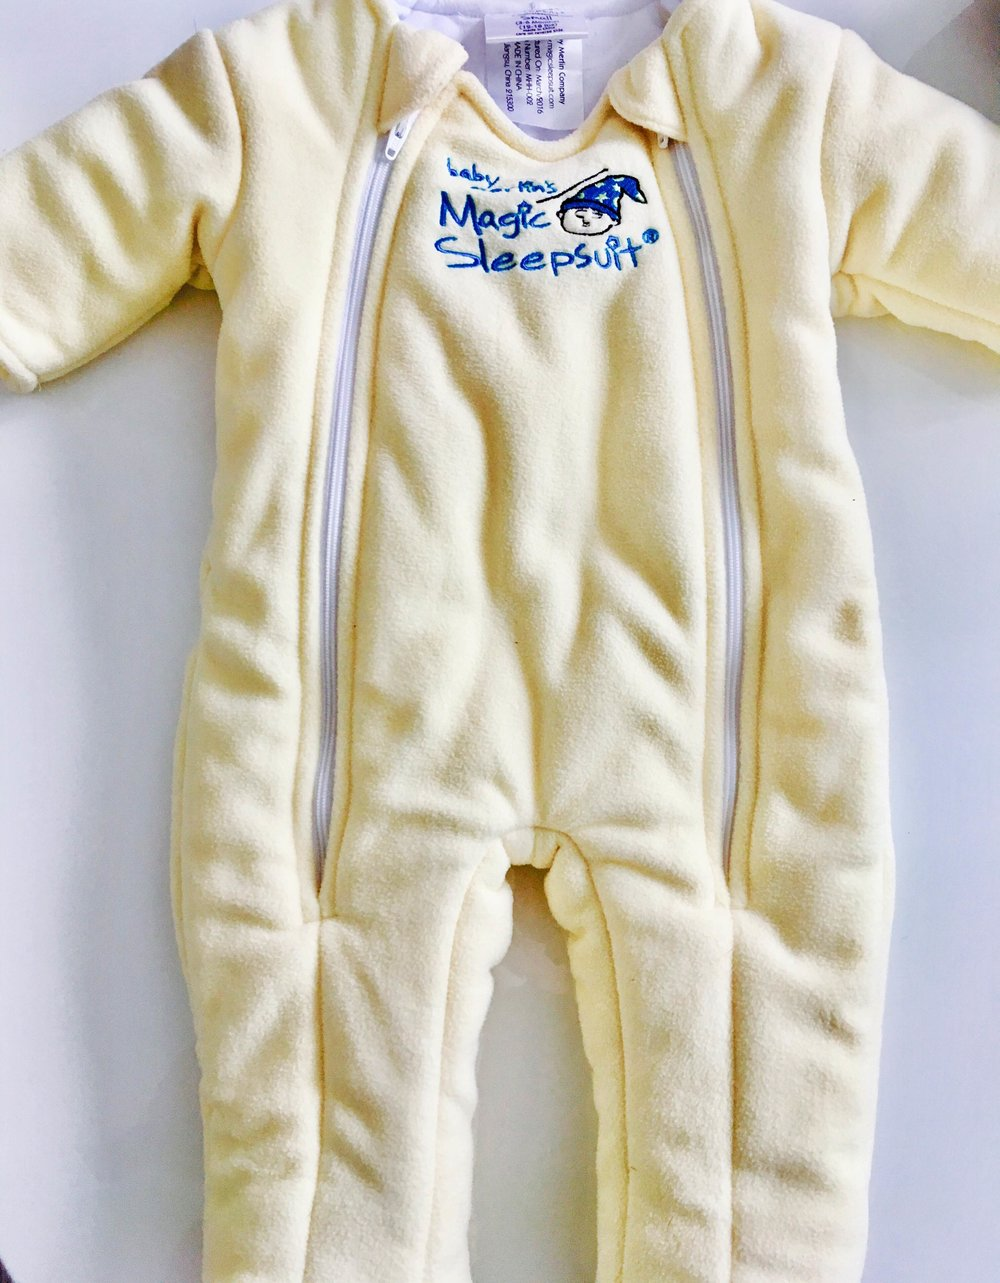 Baby Merlin's Magic Sleep Suit for Sale Yellow